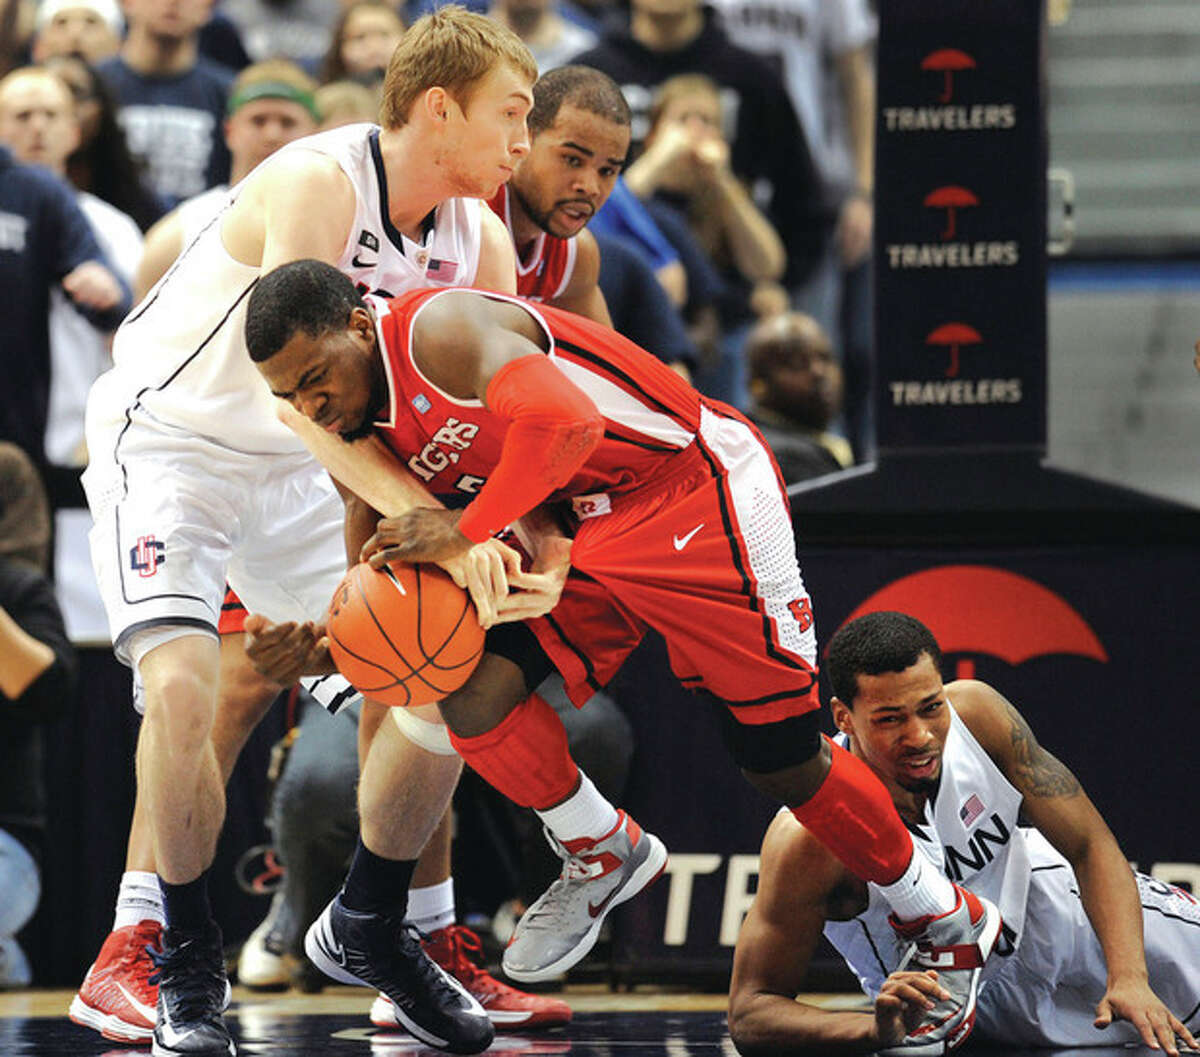 AP photo UConn's Niels Giffey, left, fouls Rutgers' Eli Carter, center, on a play during the first half of Sunday's game. Giffey came off the bench and made a strong contribution to the Huskies' victory. He efforts drew some post-game comparisons to the type of all-around game often turned in by Kelly Faris, the versatile standout on the UConn women's squad.